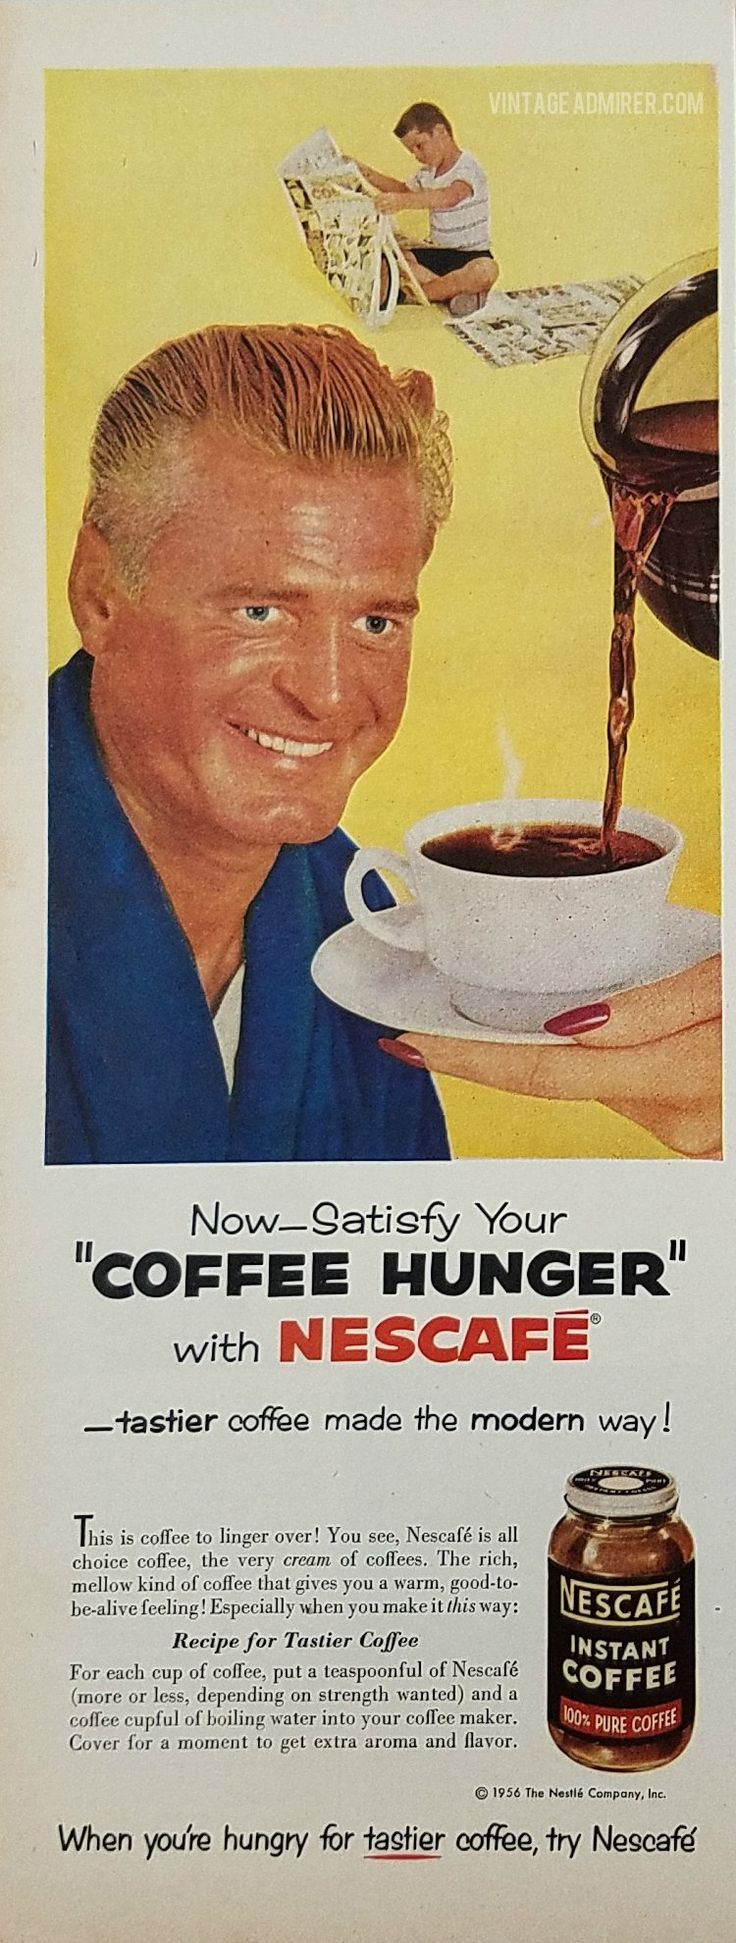 1956 Nescafe Instant Coffee Vintage Ad - Woman pouring man cup of coffee